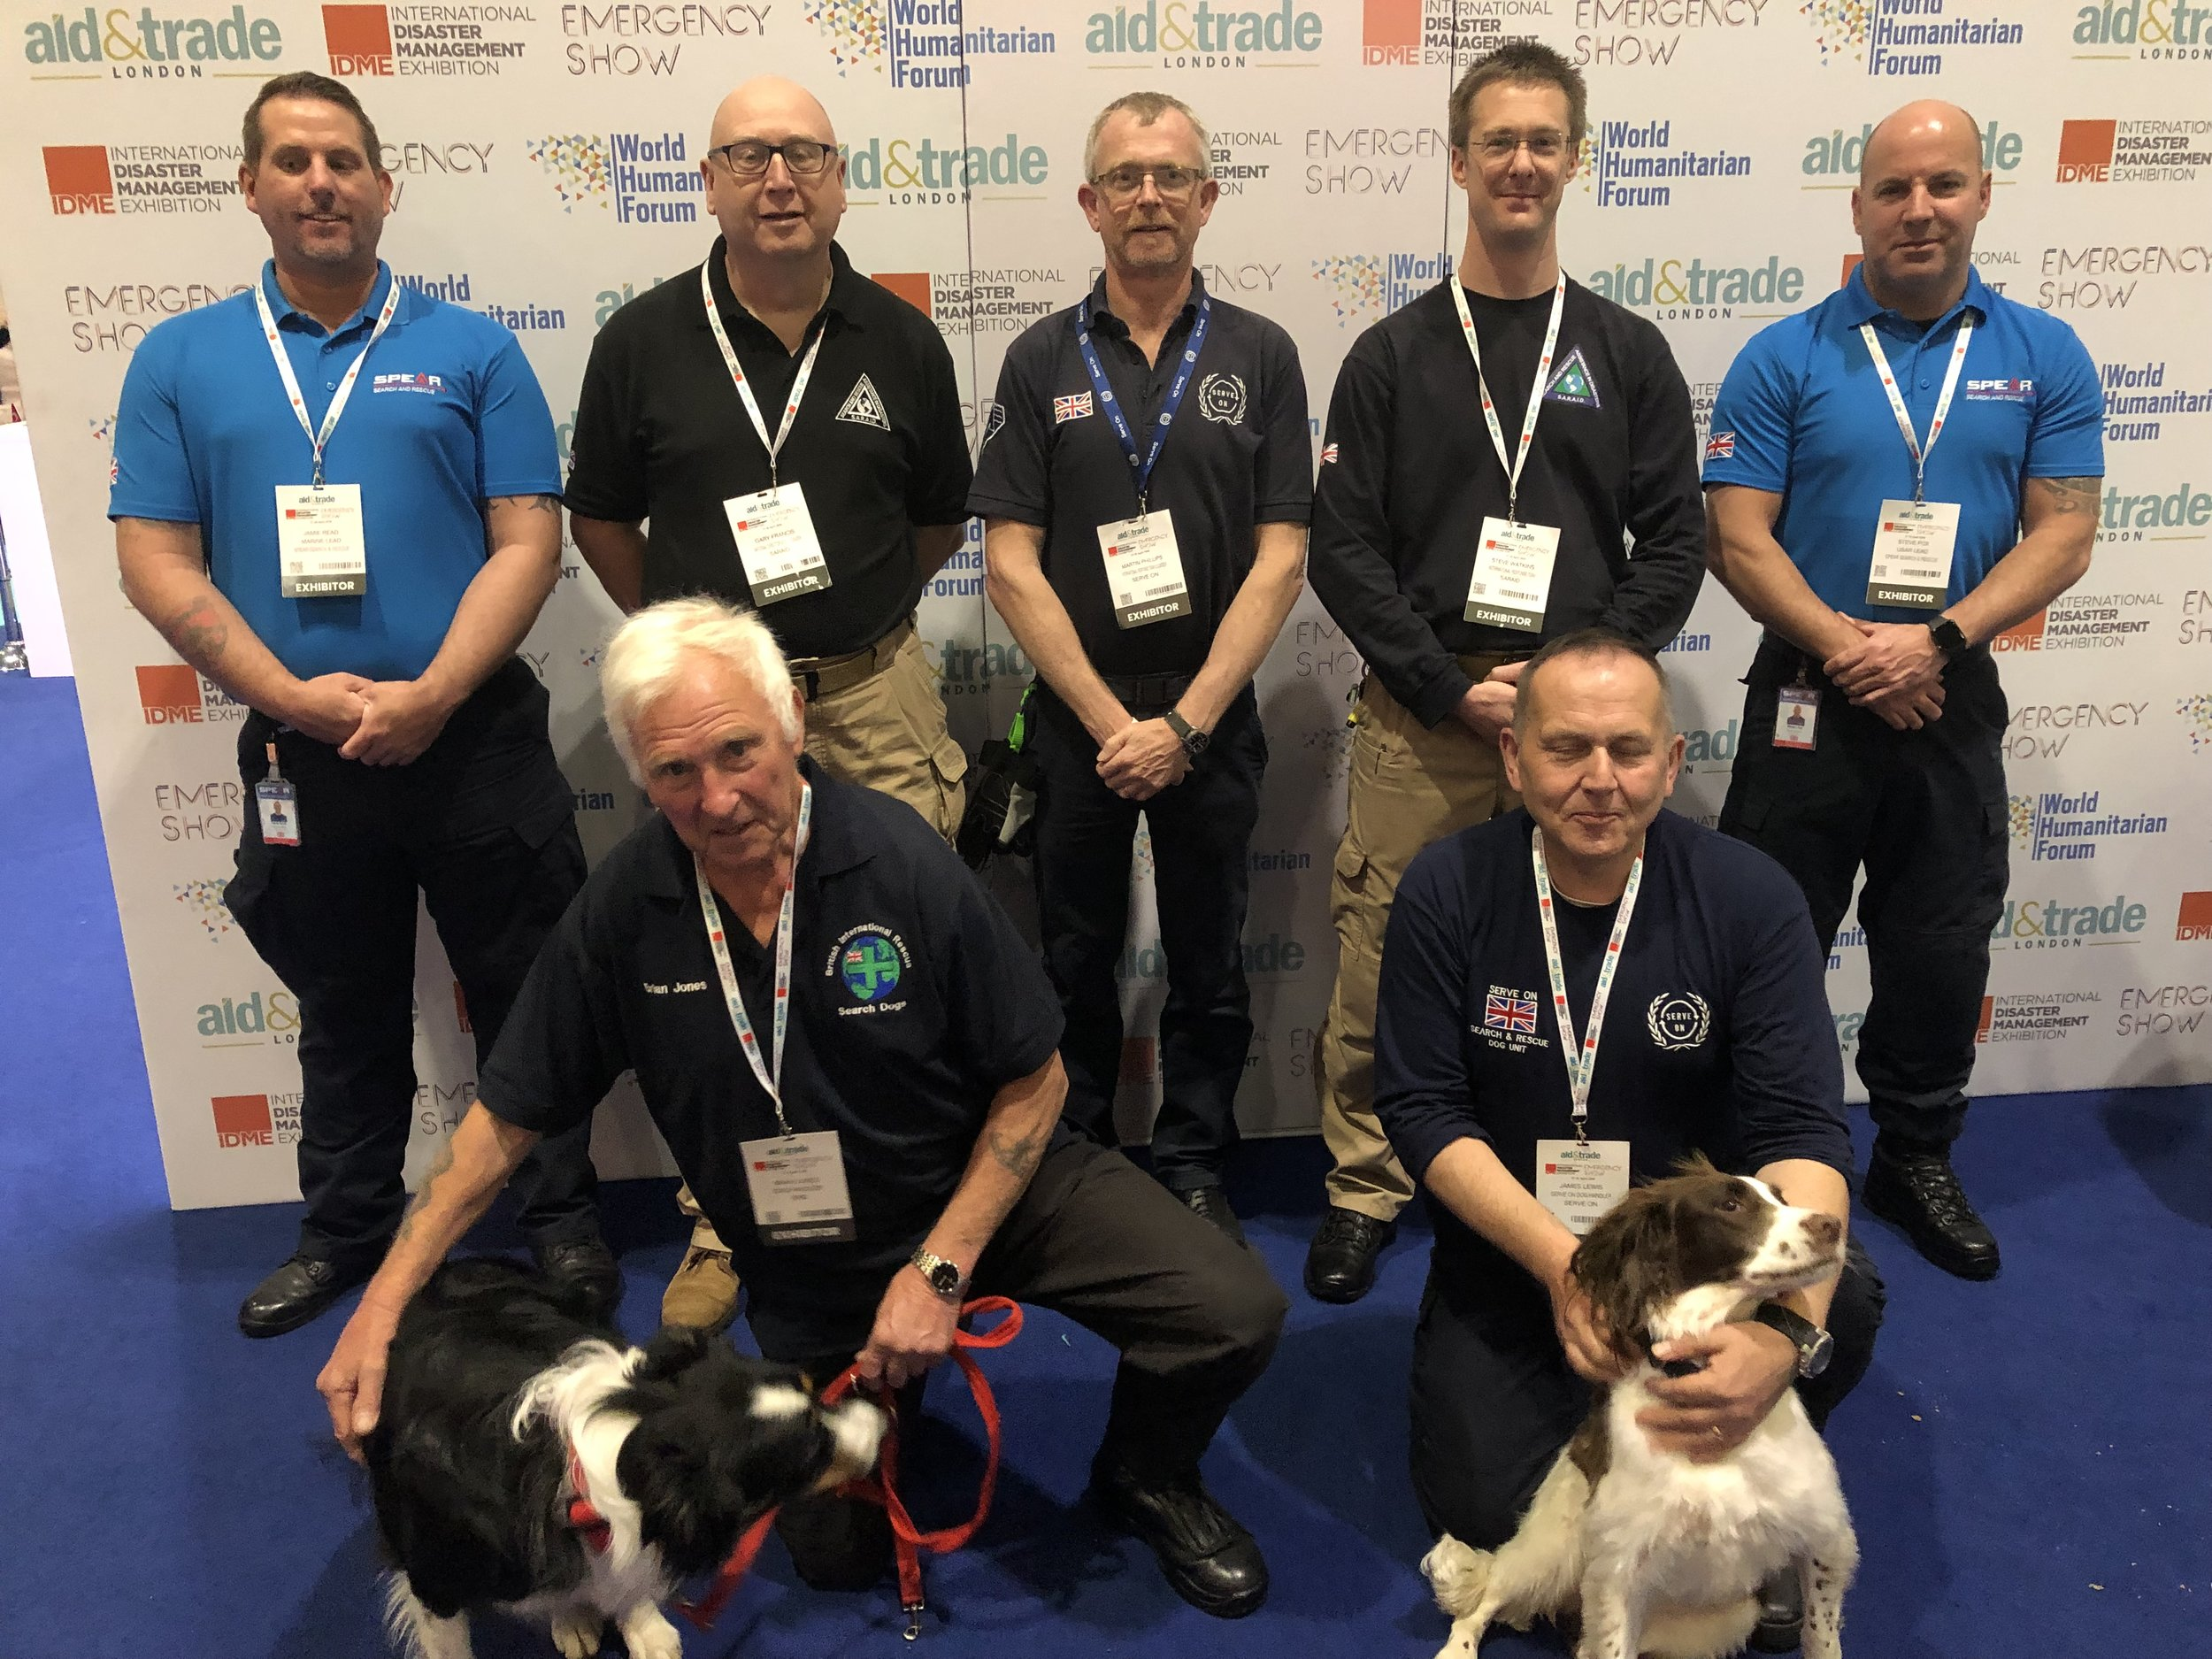 Serve On volunteers joined with SARAID, SPEAR and BIRD volunteers to launch the new UKIVRA alliance at the Aid&Trade International Disaster Management Exhibition at London's ExCel